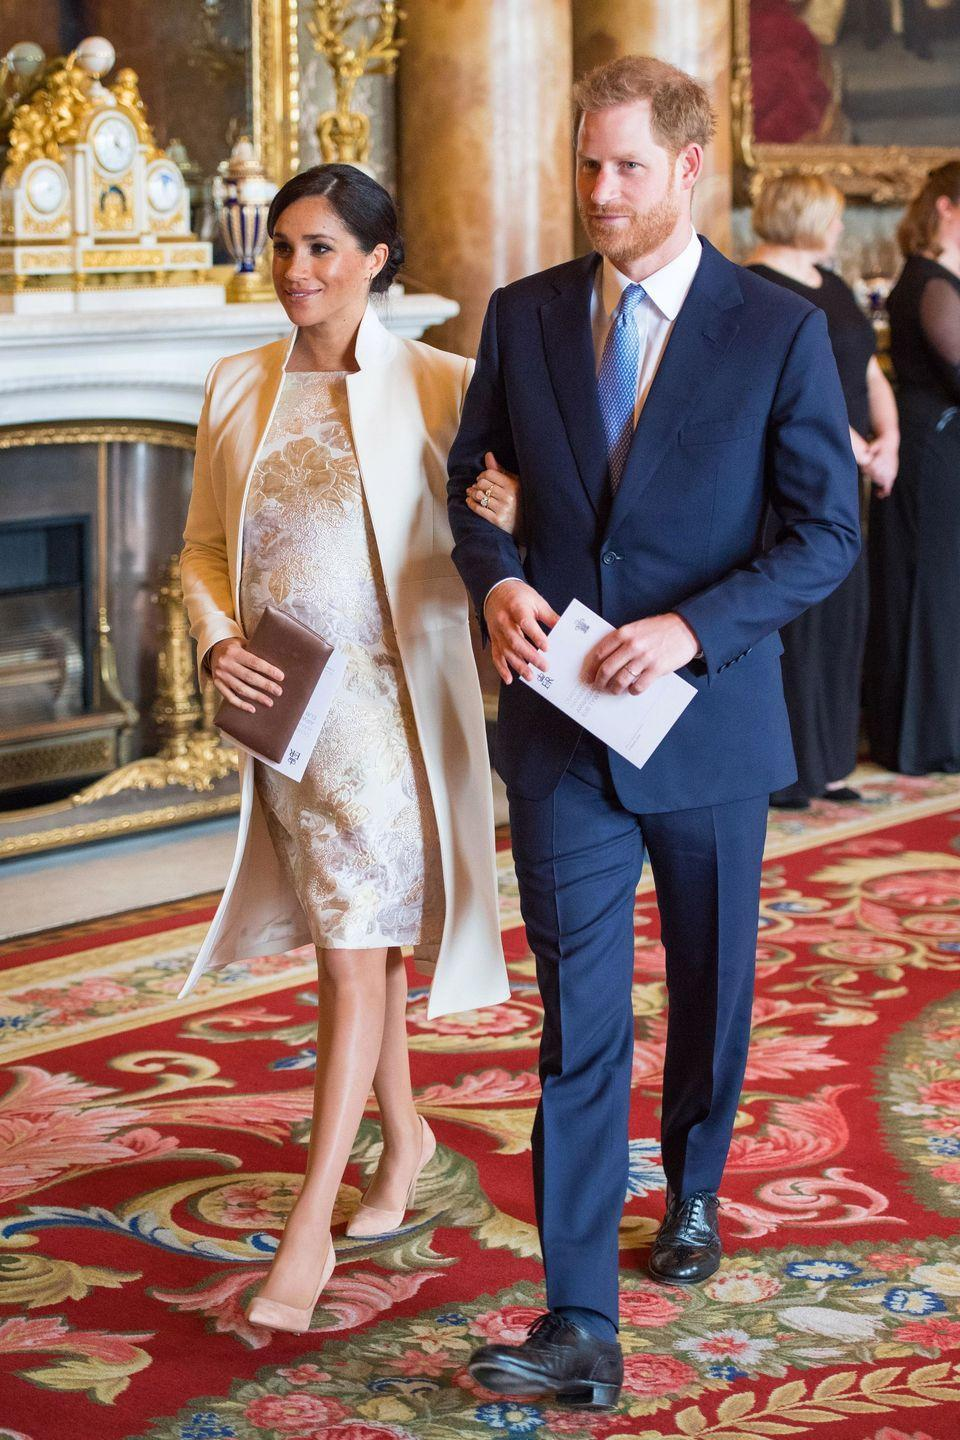 <p>The royals were on hand to mark the 50th anniversary of the investiture of the Prince of Wales at Buckingham Palace on March 5, 2019. </p>